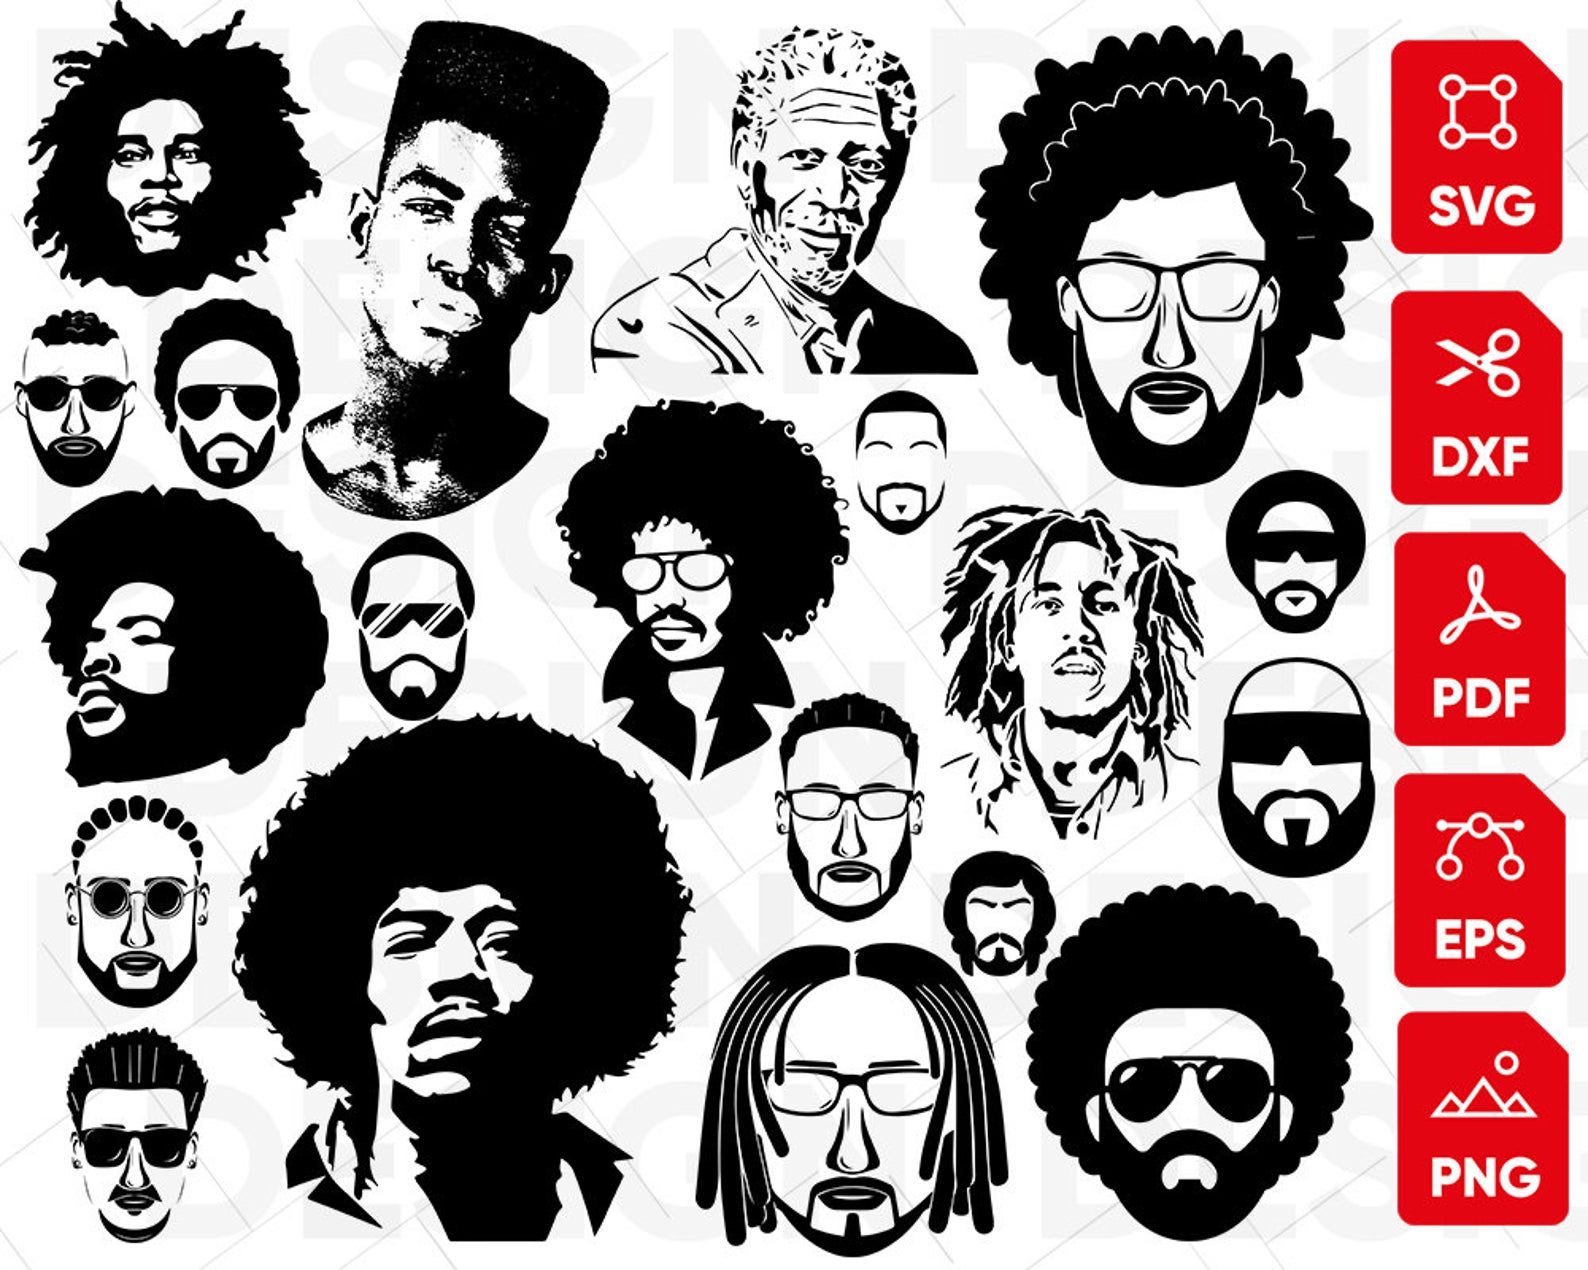 Afro Man Svg Black Man Svg African American Svg Afro Hair Etsy Afro Men Afro Afro Puff